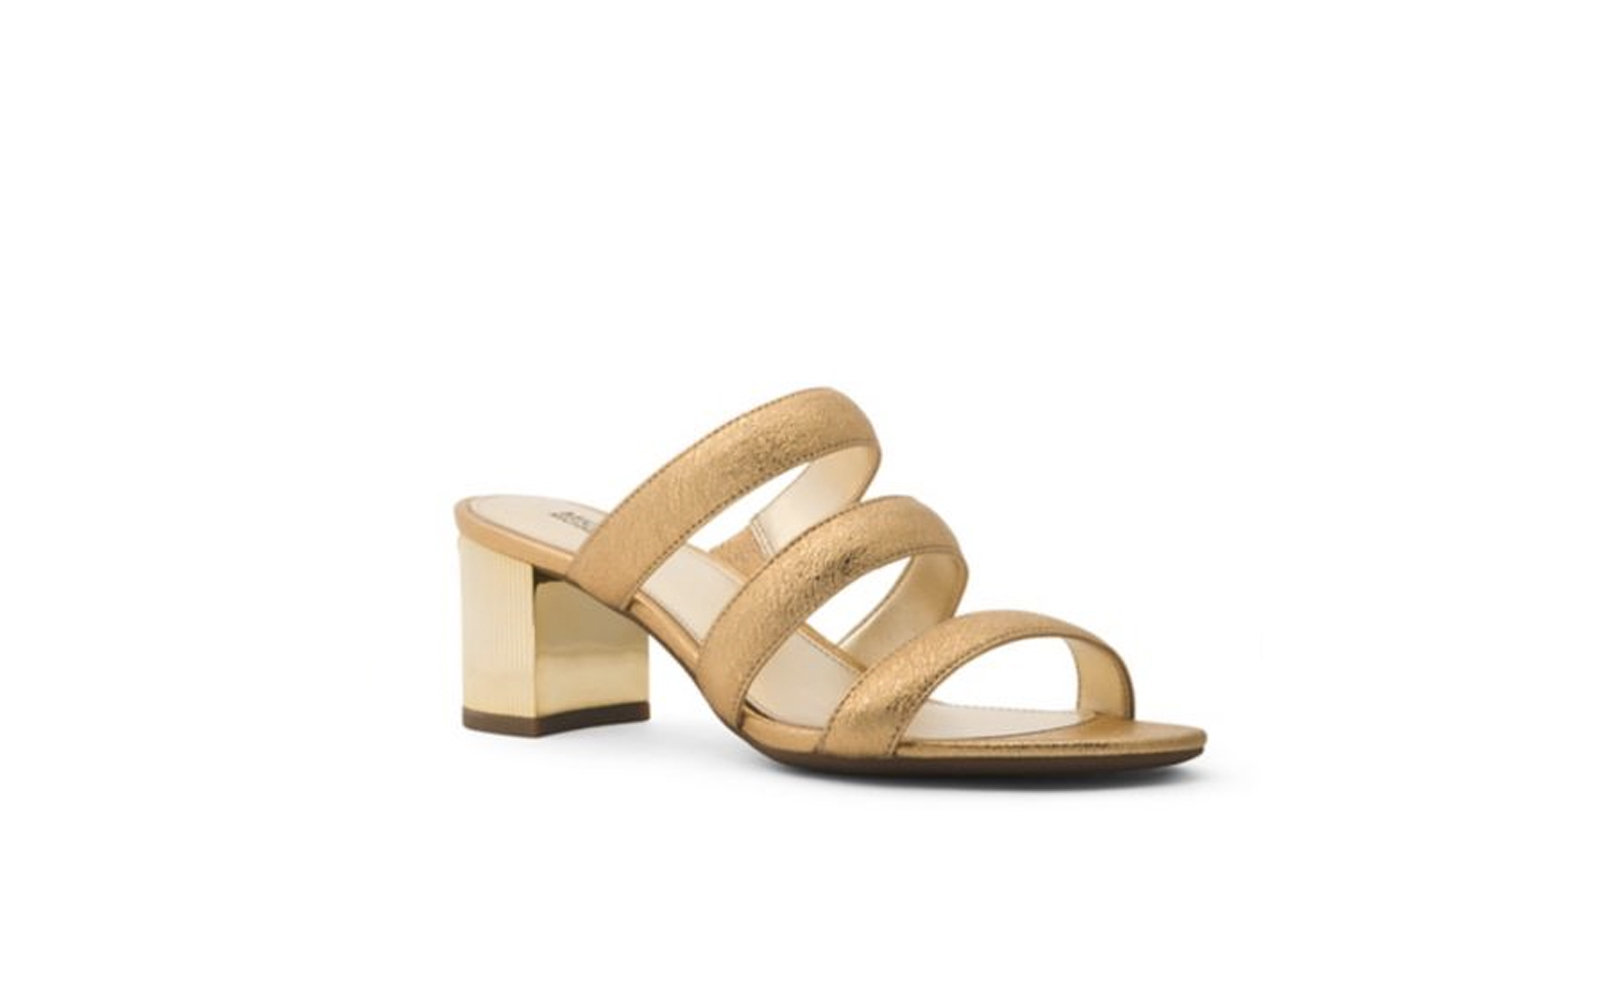 Michael Michael Kors 'Paloma' Flex Leather Sandals